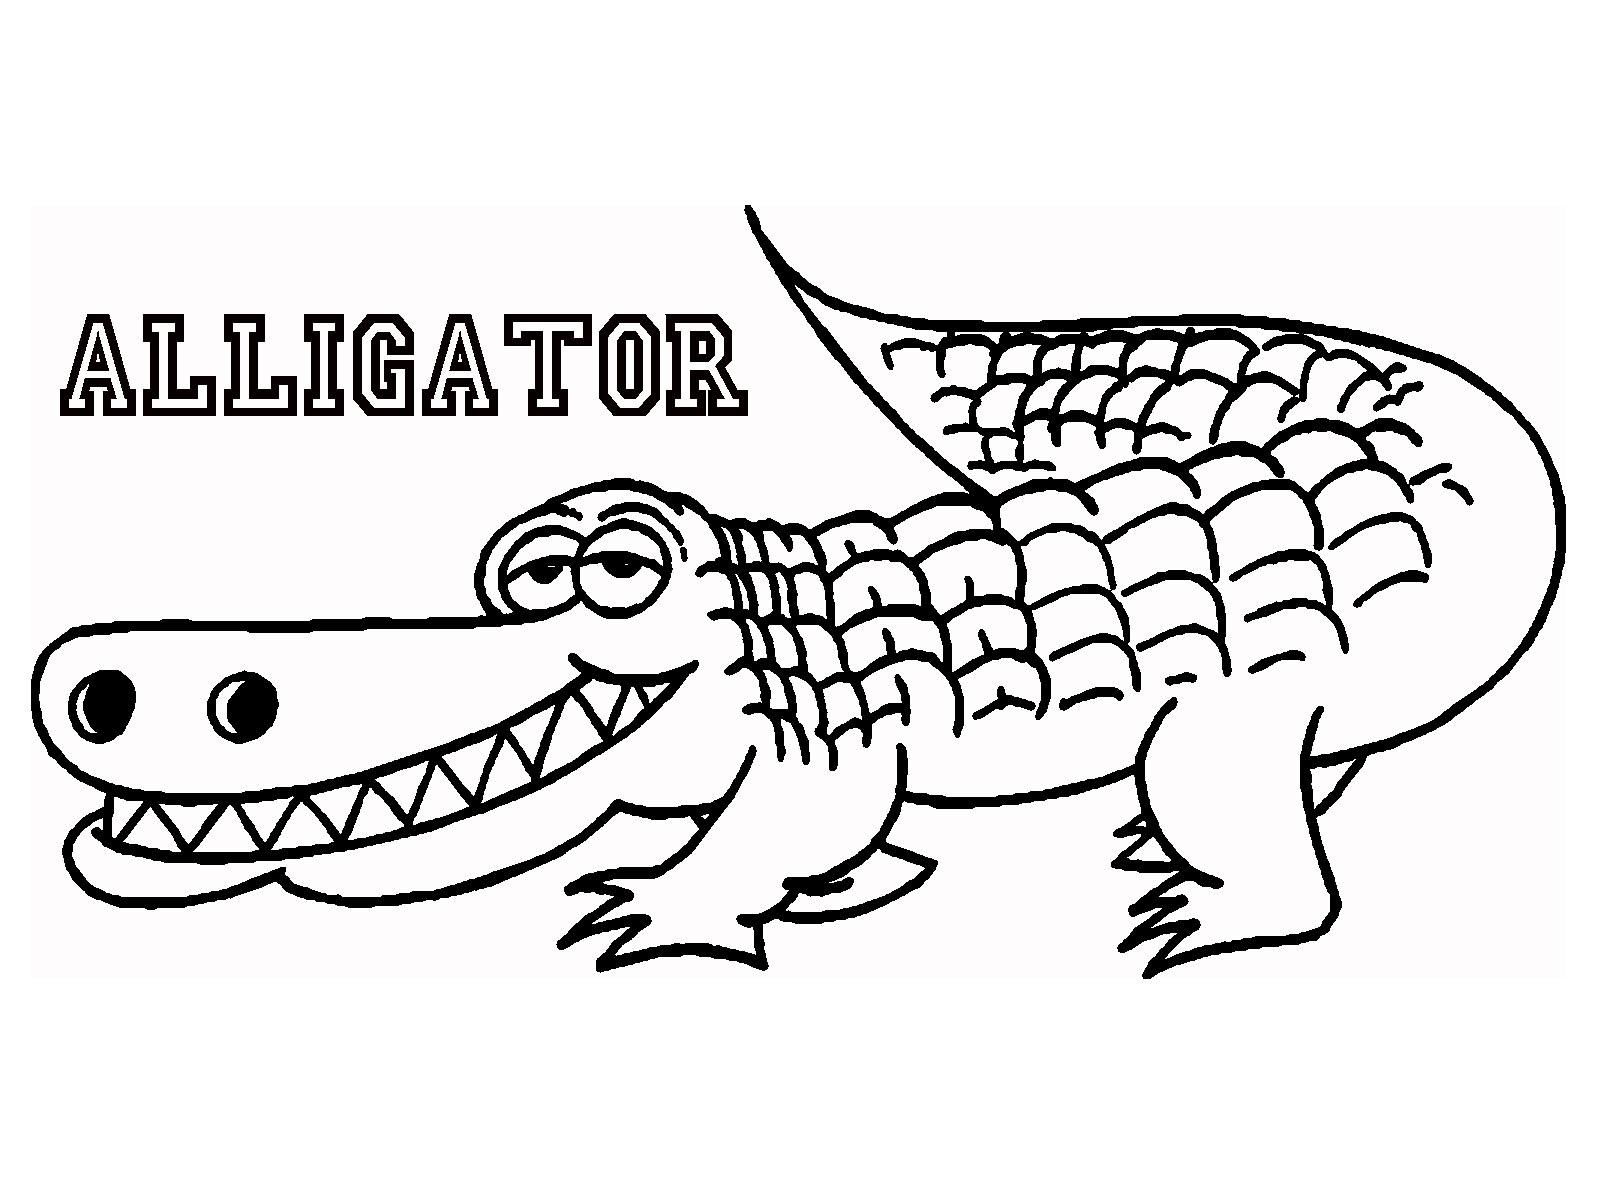 alligator coloring pages - alligator great pictures